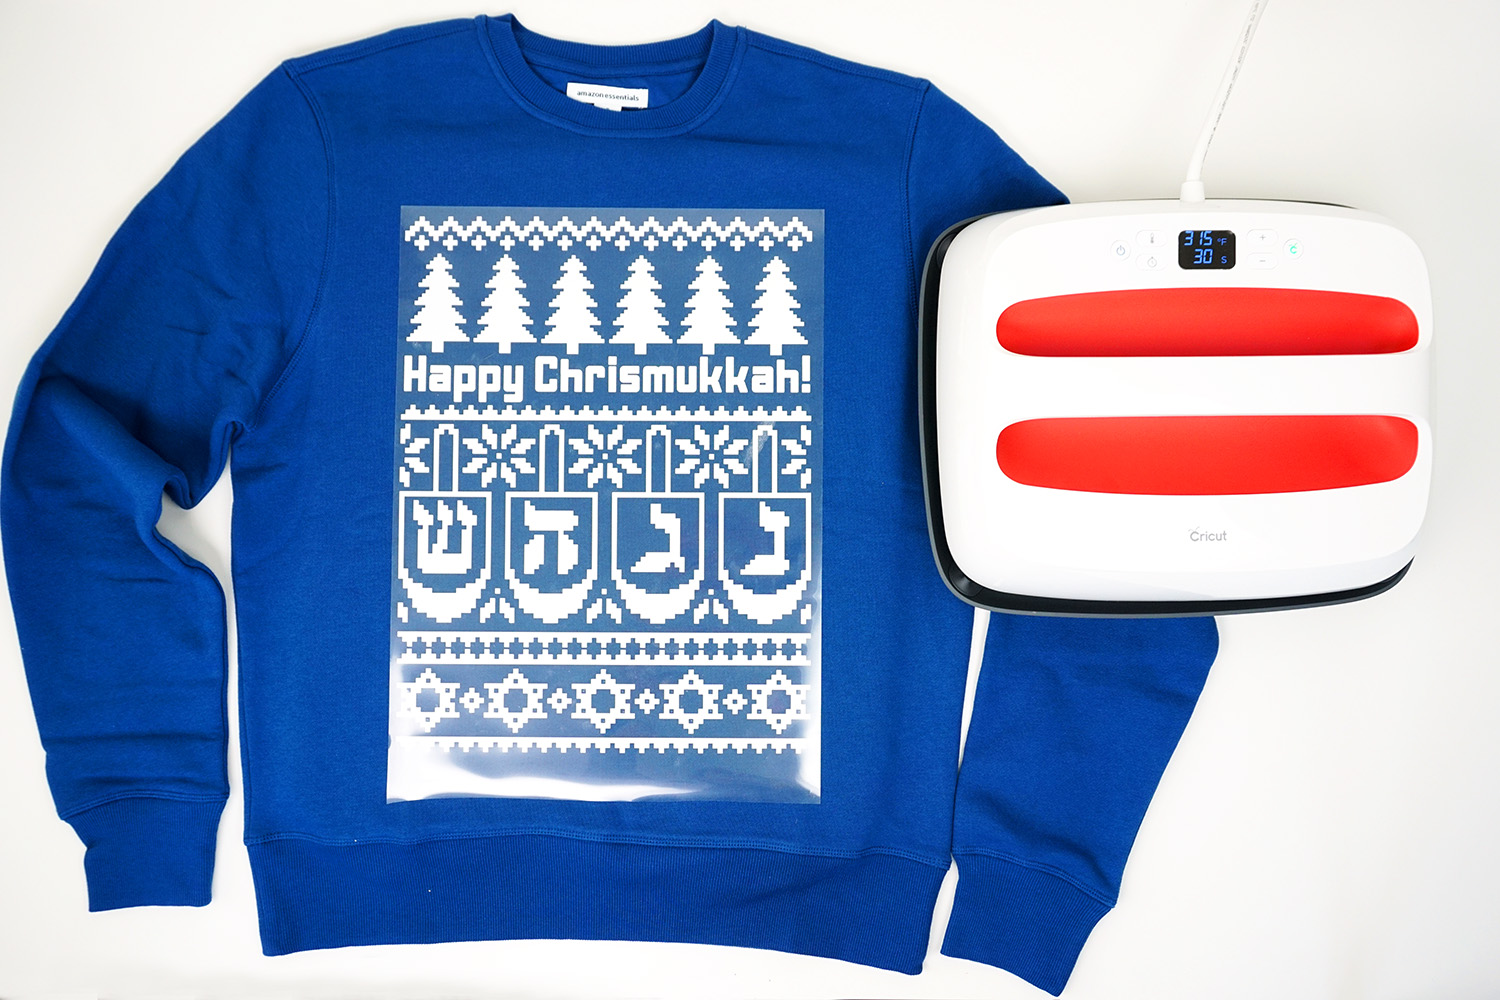 DIY Chrismukkah Shirts with Cricut - Happiness is Homemade